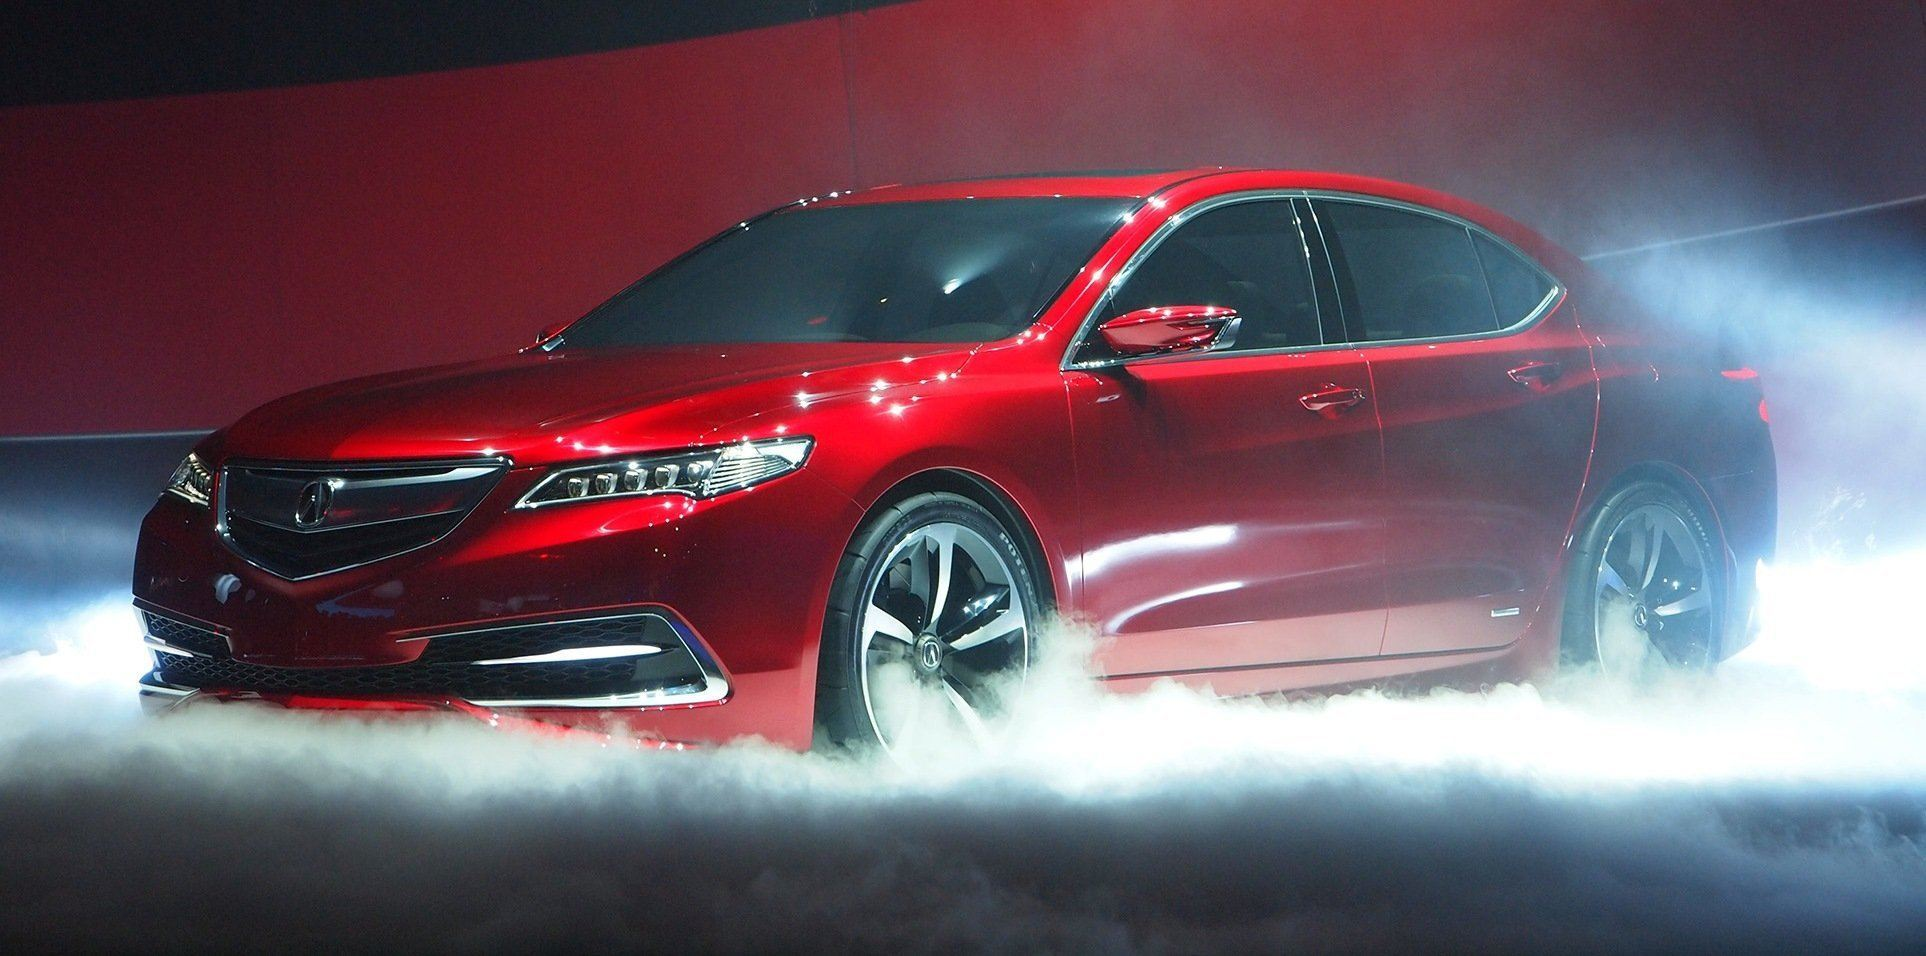 concept to reality acura tlx prototype vs tlx gt racer vs real 2015 tlx production car. Black Bedroom Furniture Sets. Home Design Ideas